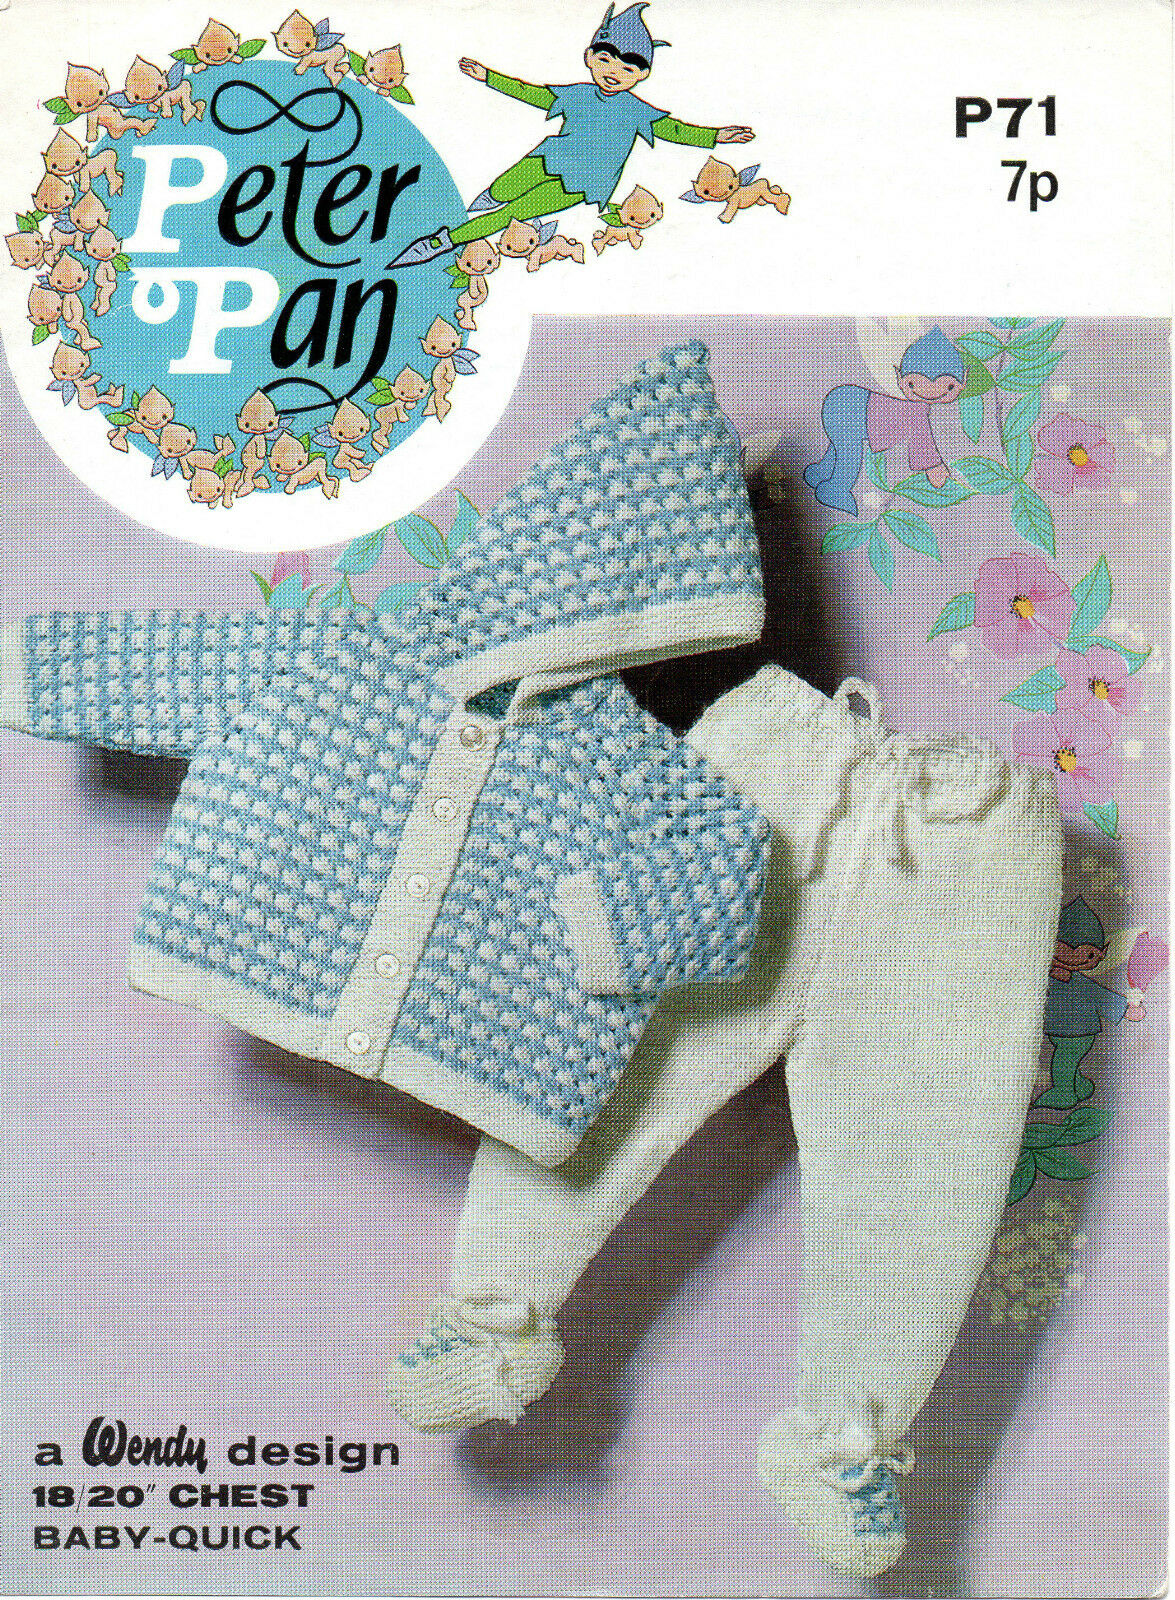 Peter Pan Baby Knitting Patterns : Peter Pan P71 Vintage Baby Knitting Pattern QK/DK 18-20